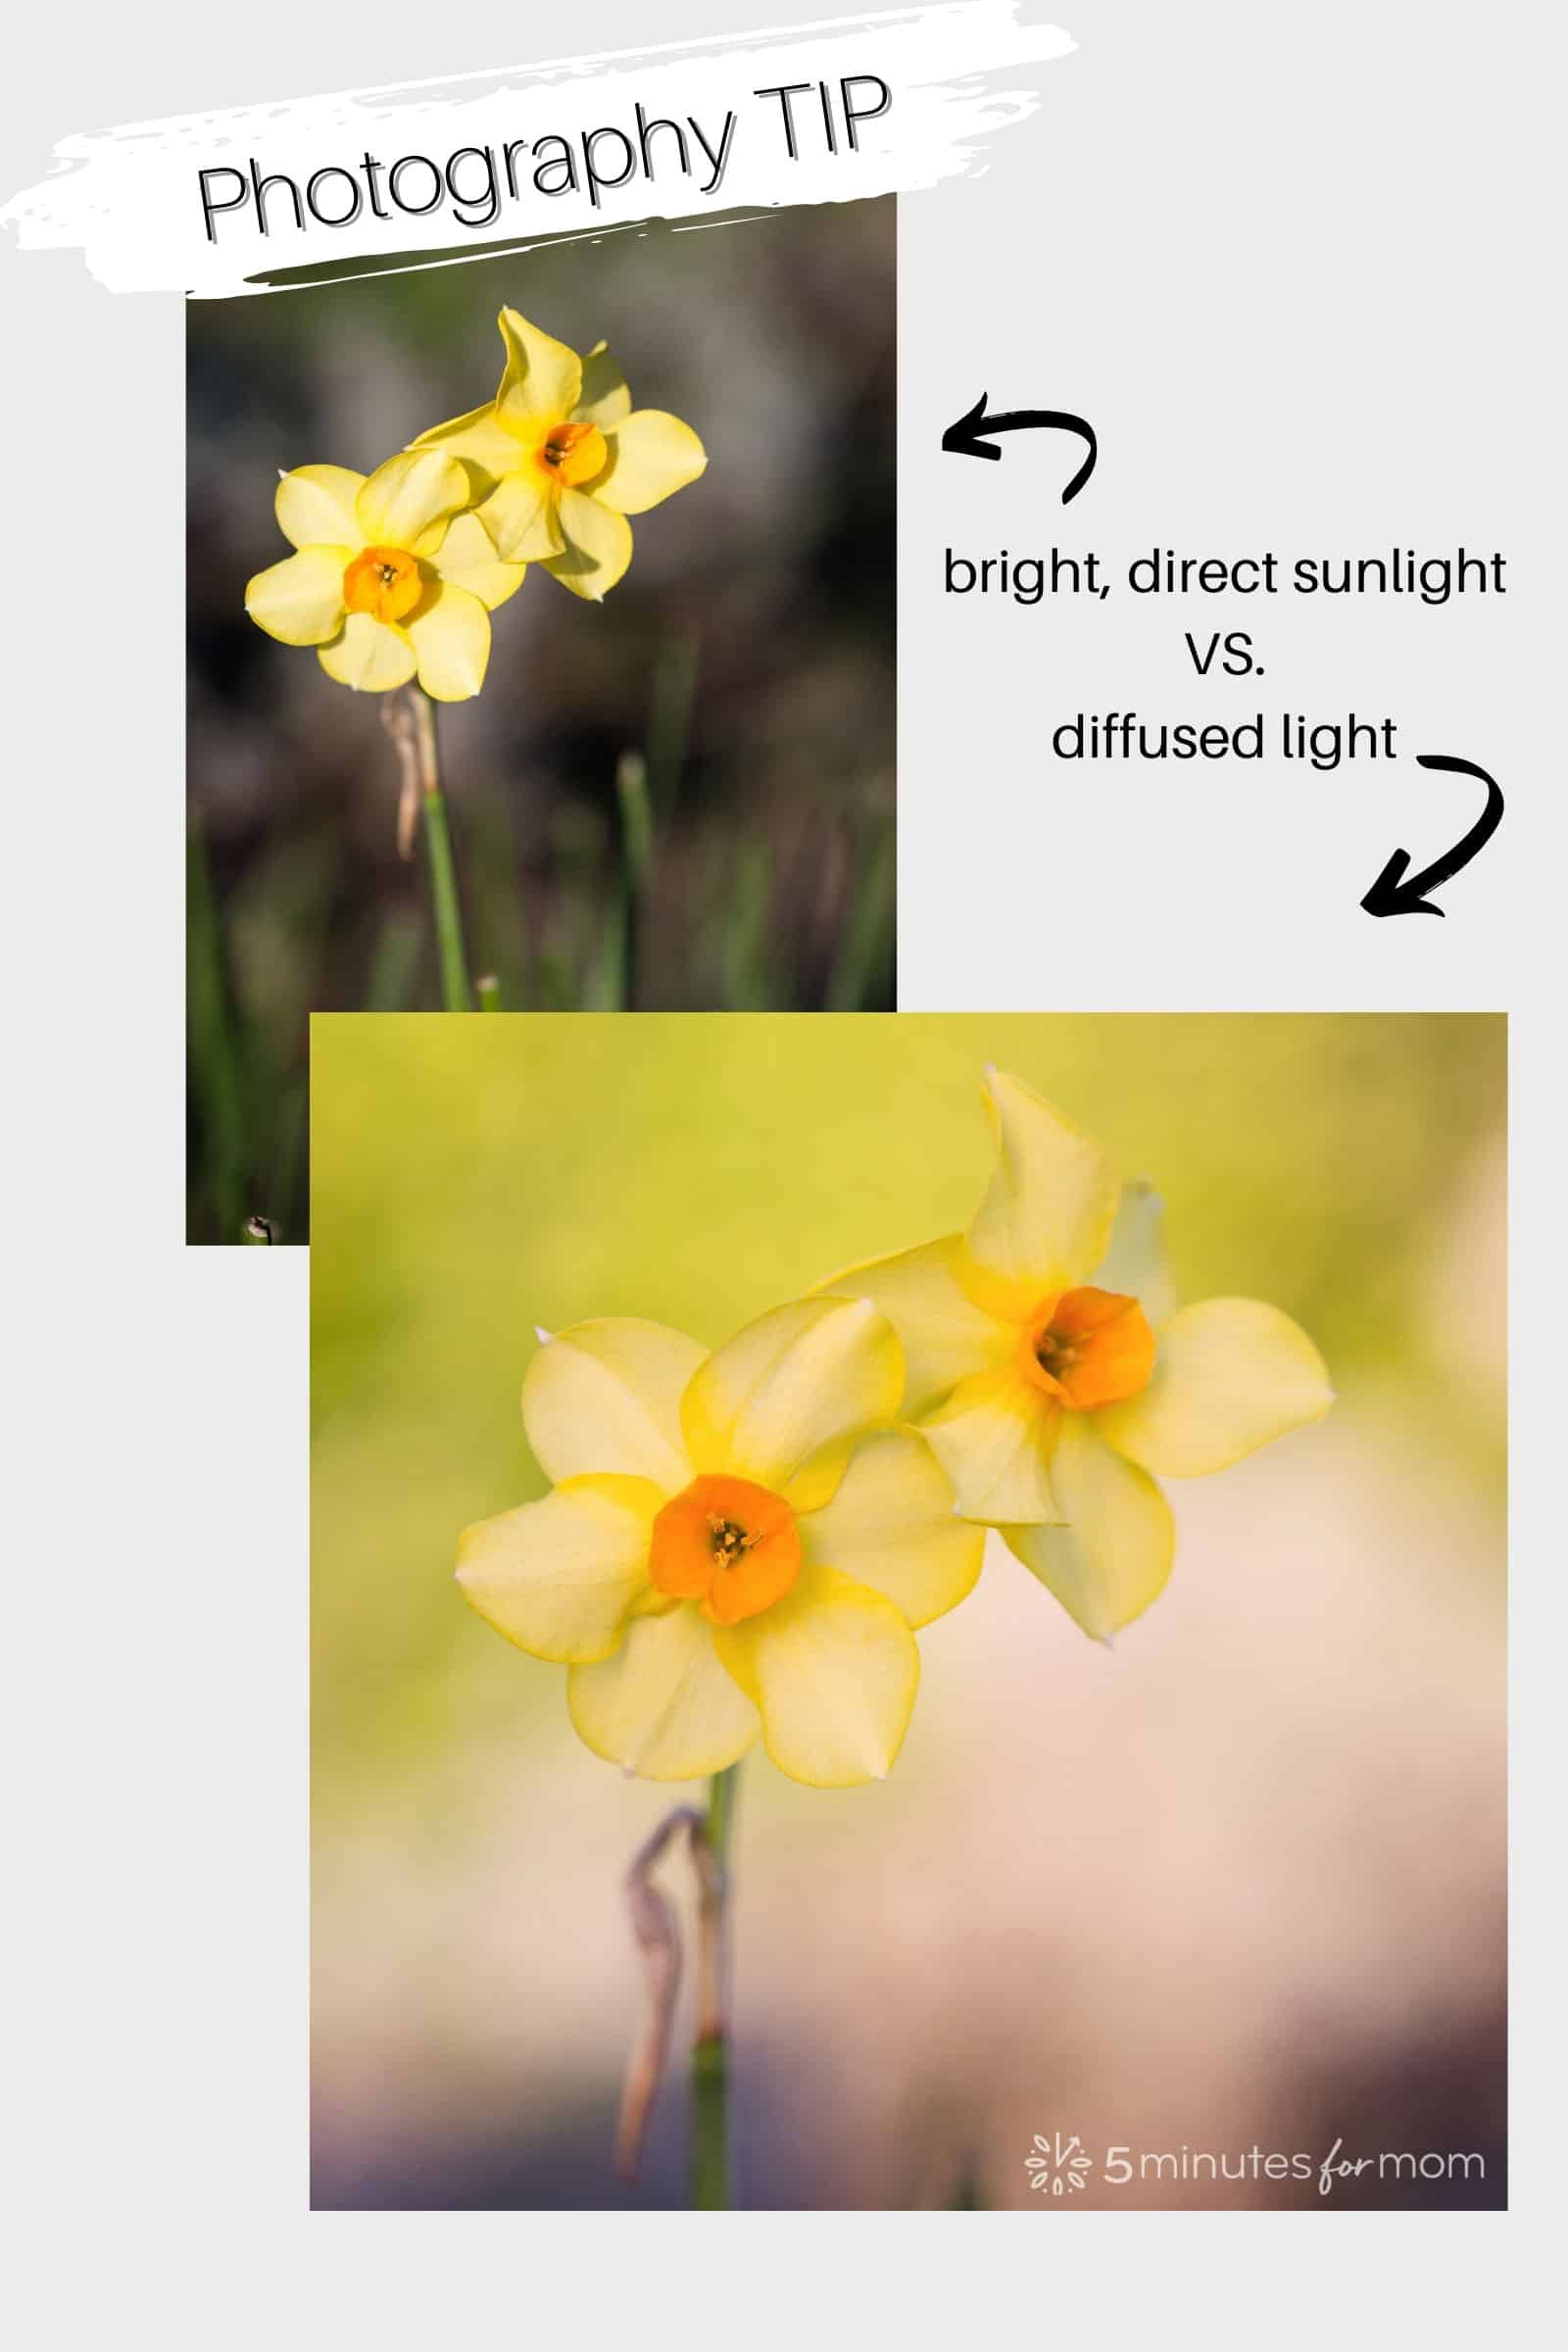 photo of daffodils demonstrating direct sunlight vs diffused light